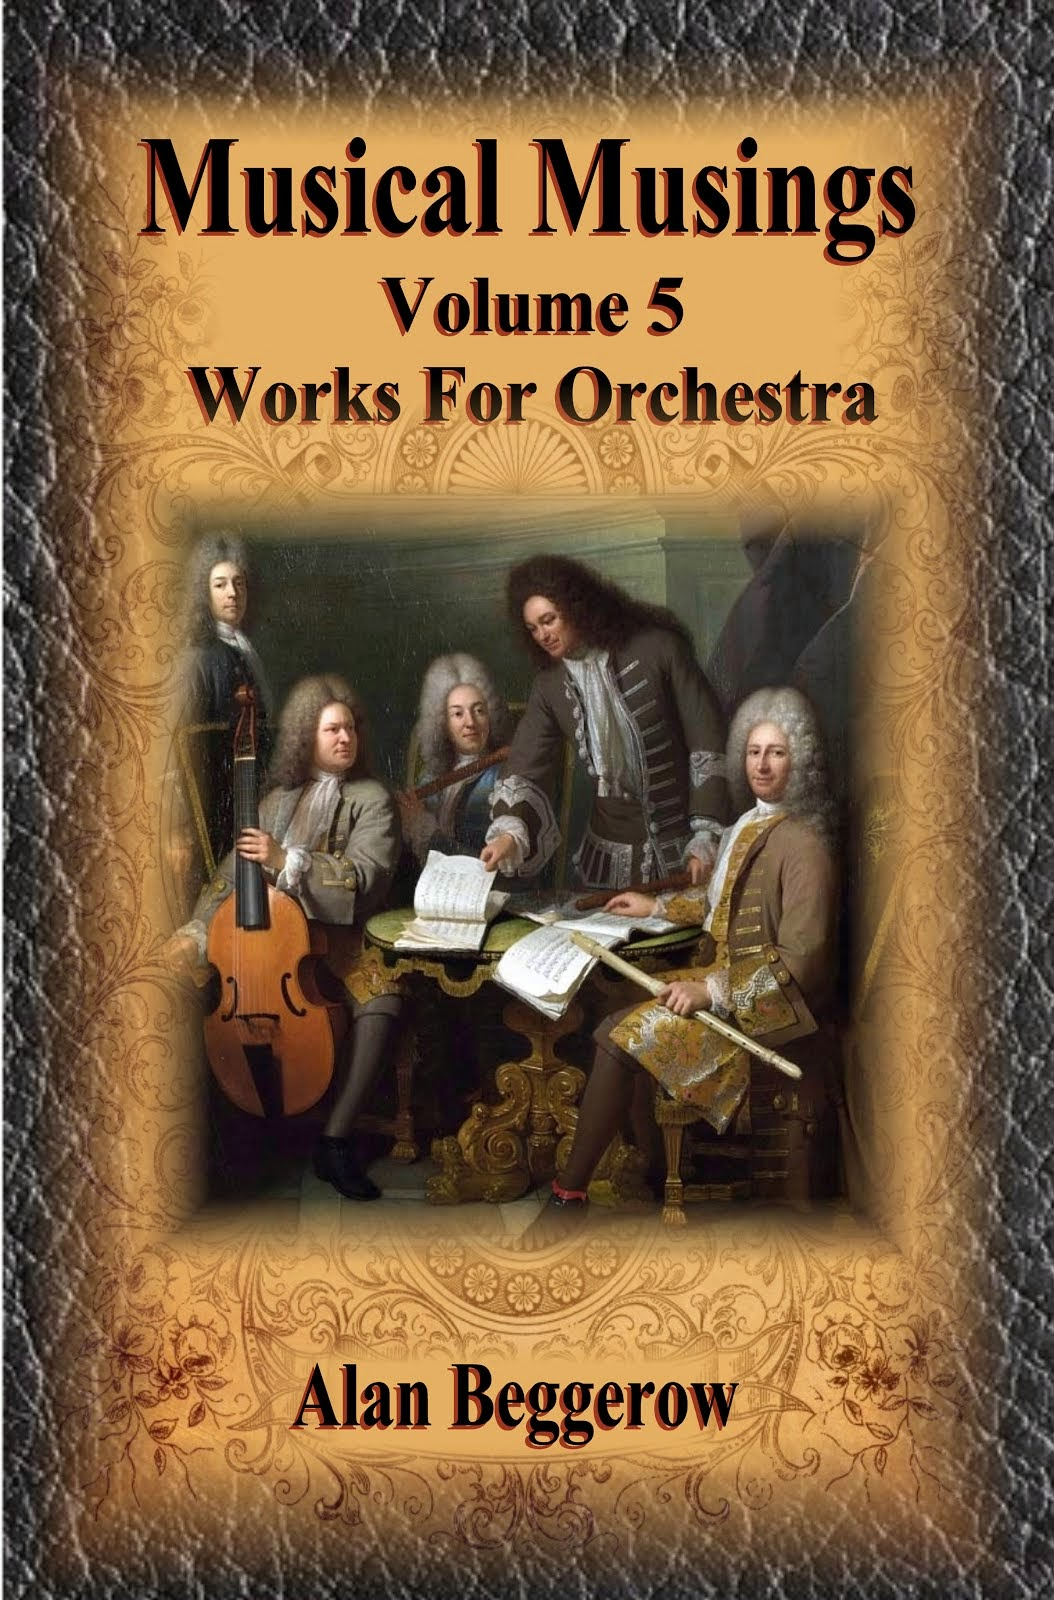 Musical Musings Volume 5